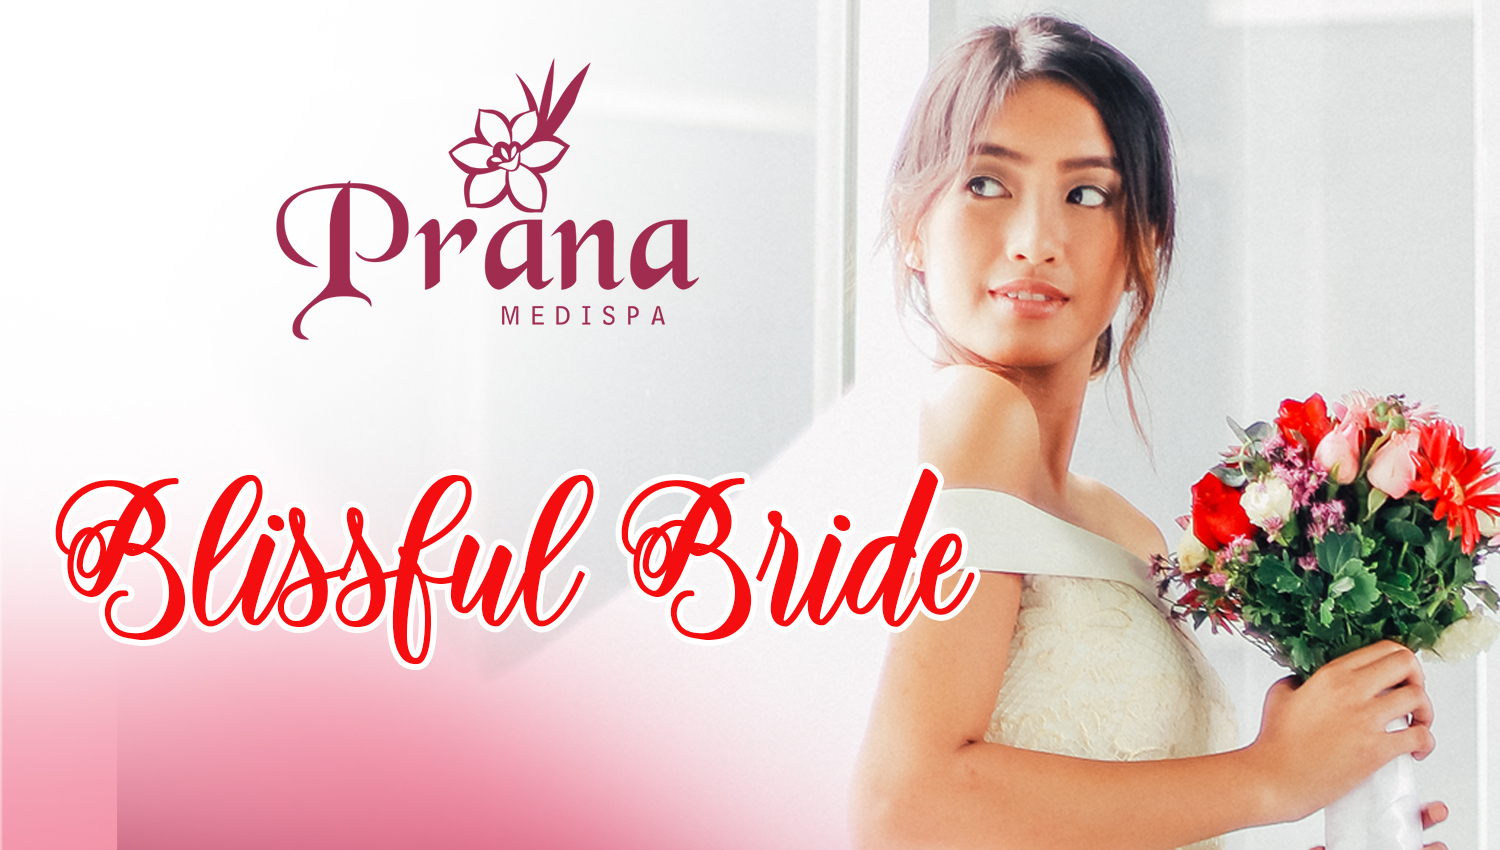 PRANA MEDISPA BLISSFUL BRIDE PROMO